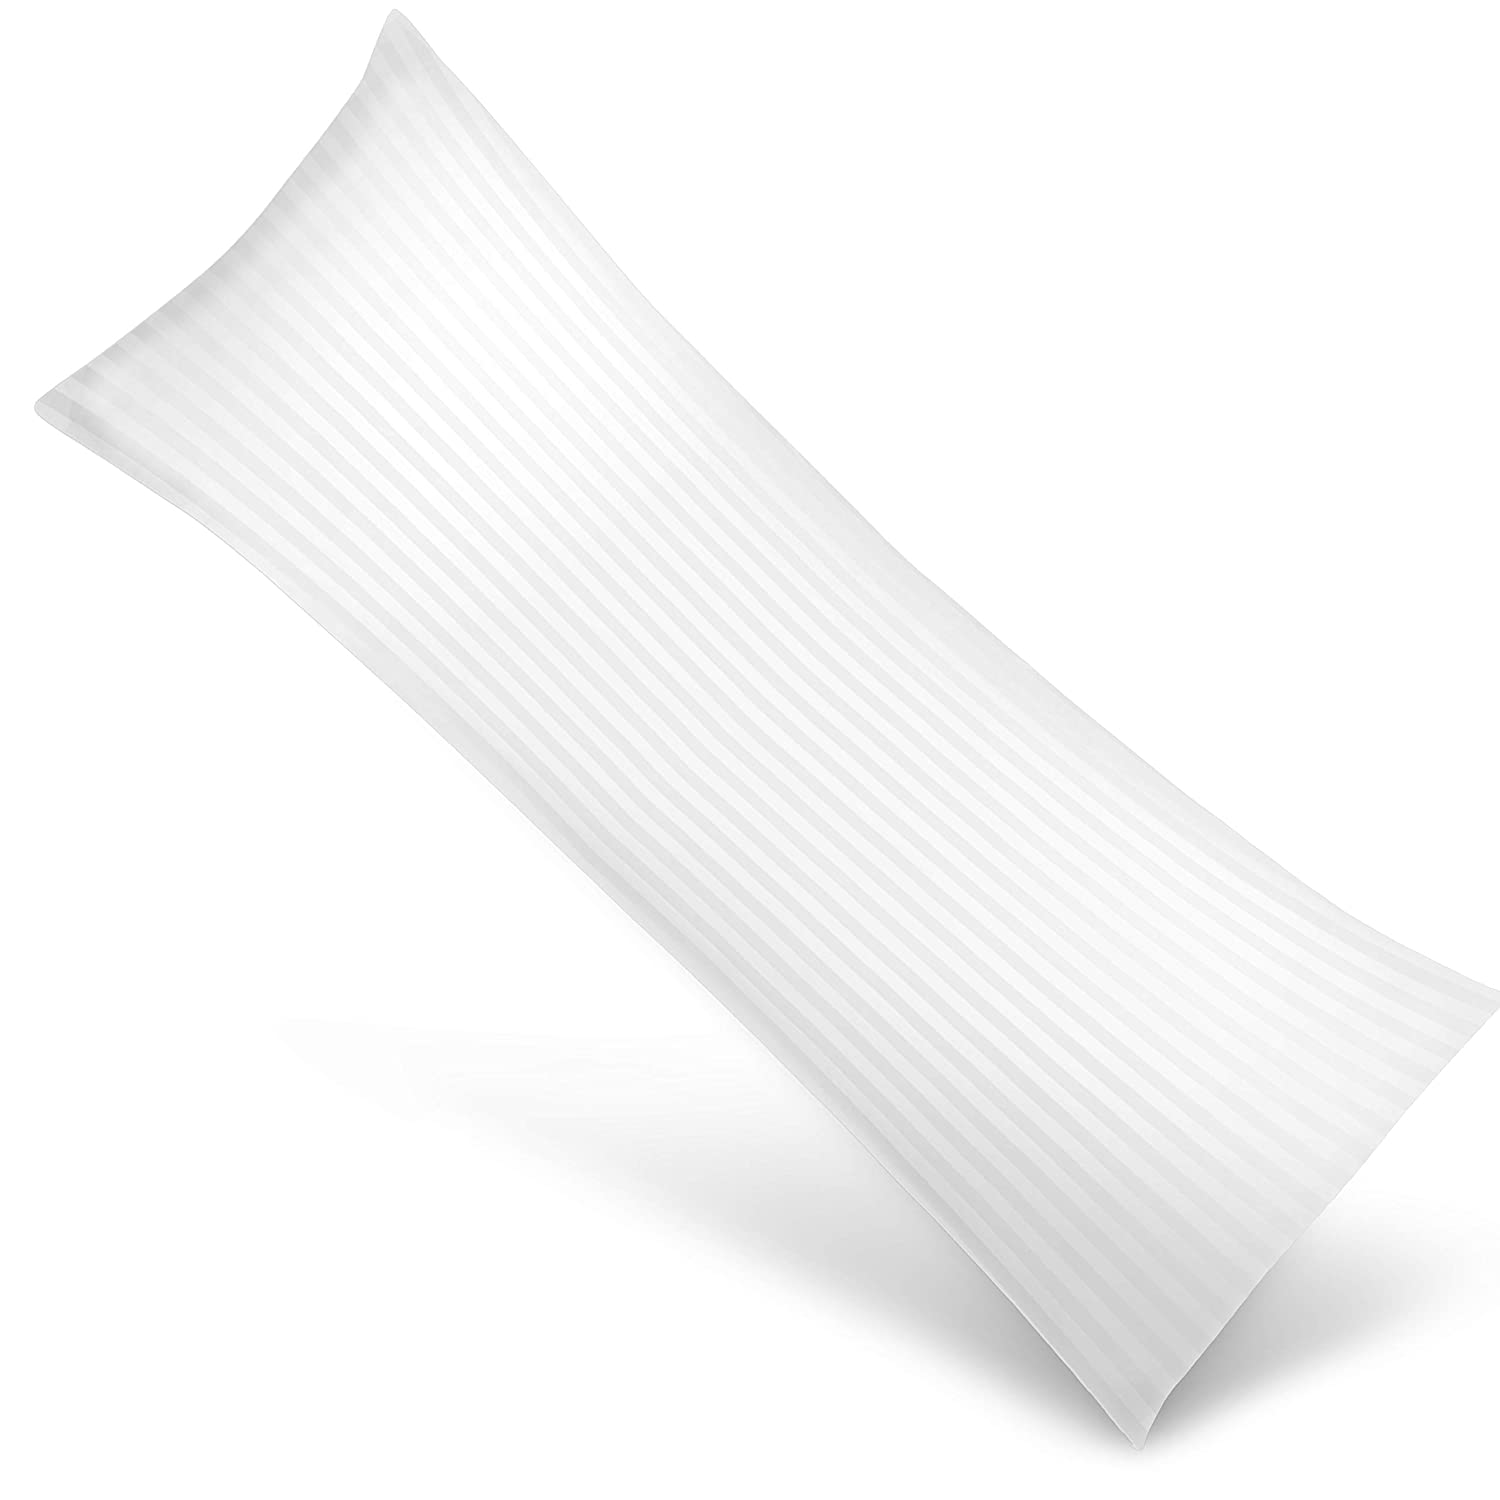 Ultra Soft Body Pillow - Long Side Sleeper Pillows - 100% Cotton Cover with  Soft Polyester Filling - By Utopia Bedding by Utopia Bedding : Amazon.in:  Home & Kitchen